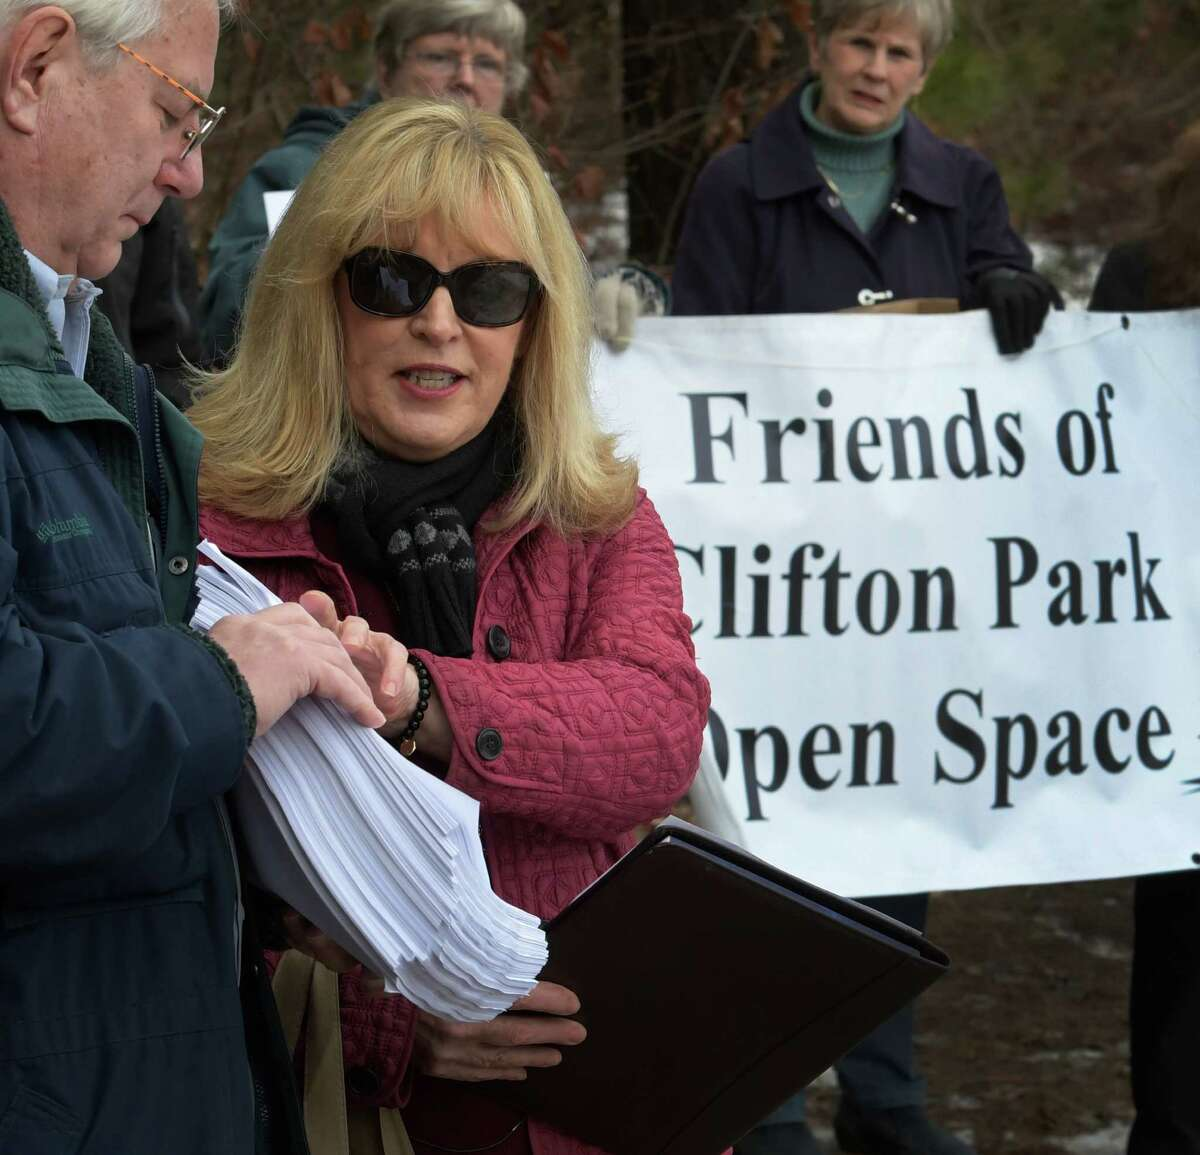 Susan Burton addresses the media as a representative of the Friends of Clifont Park Open Space Wednesday January 4, 2017 in Clifton Park, N.Y. Burton is joined by Dan Mathias who is holding the signed petitions that carry 7026 signatures forcing a referendum vote. (Skip Dickstein/Times Union)